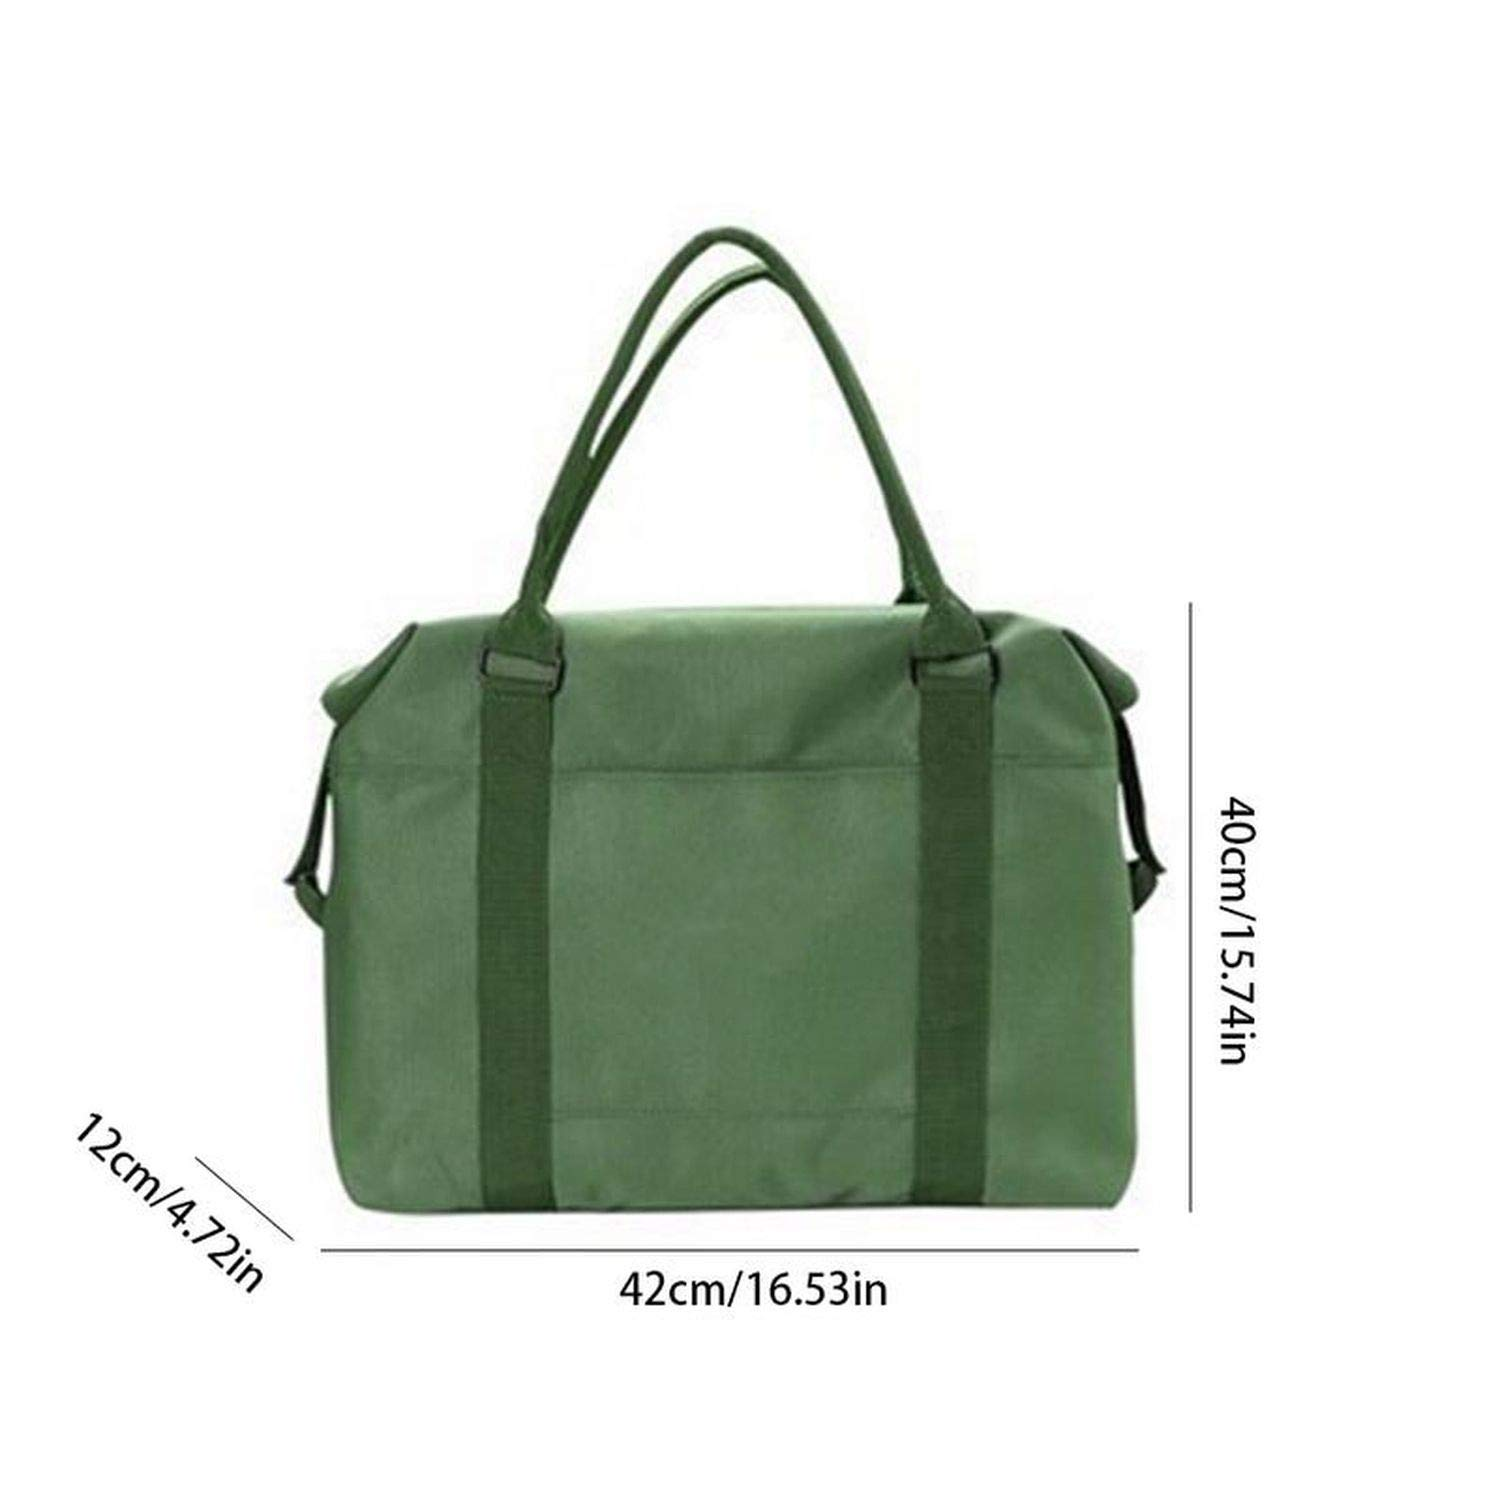 Travel Storage Duffle Bag Shoulder Tote Trolley Hand Ladies Bags Travelling Overnight Bags And Luggage For Women Packing Cubes,Khaki